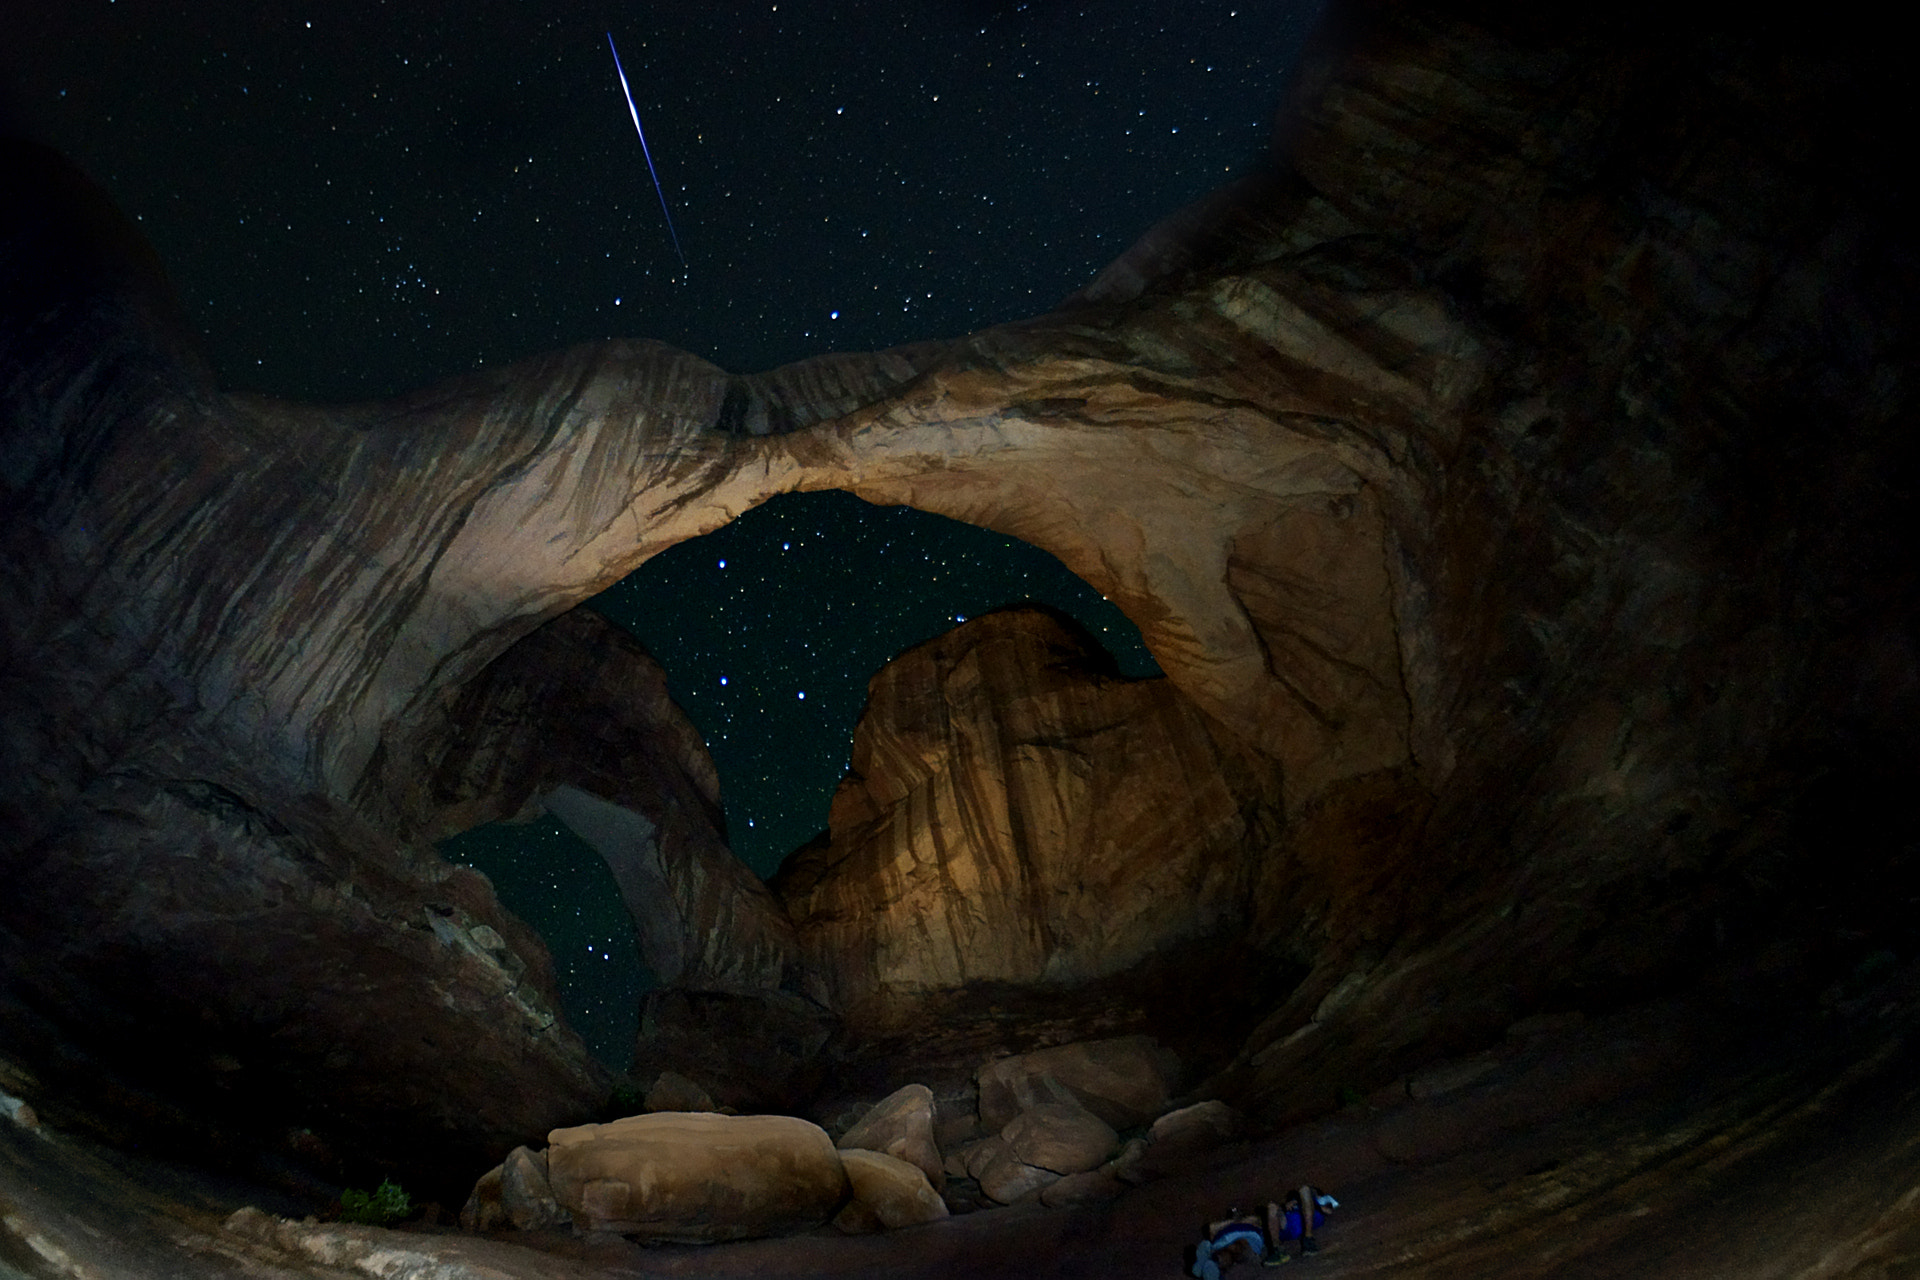 Photograph Stargazing by Lee Parks on 500px